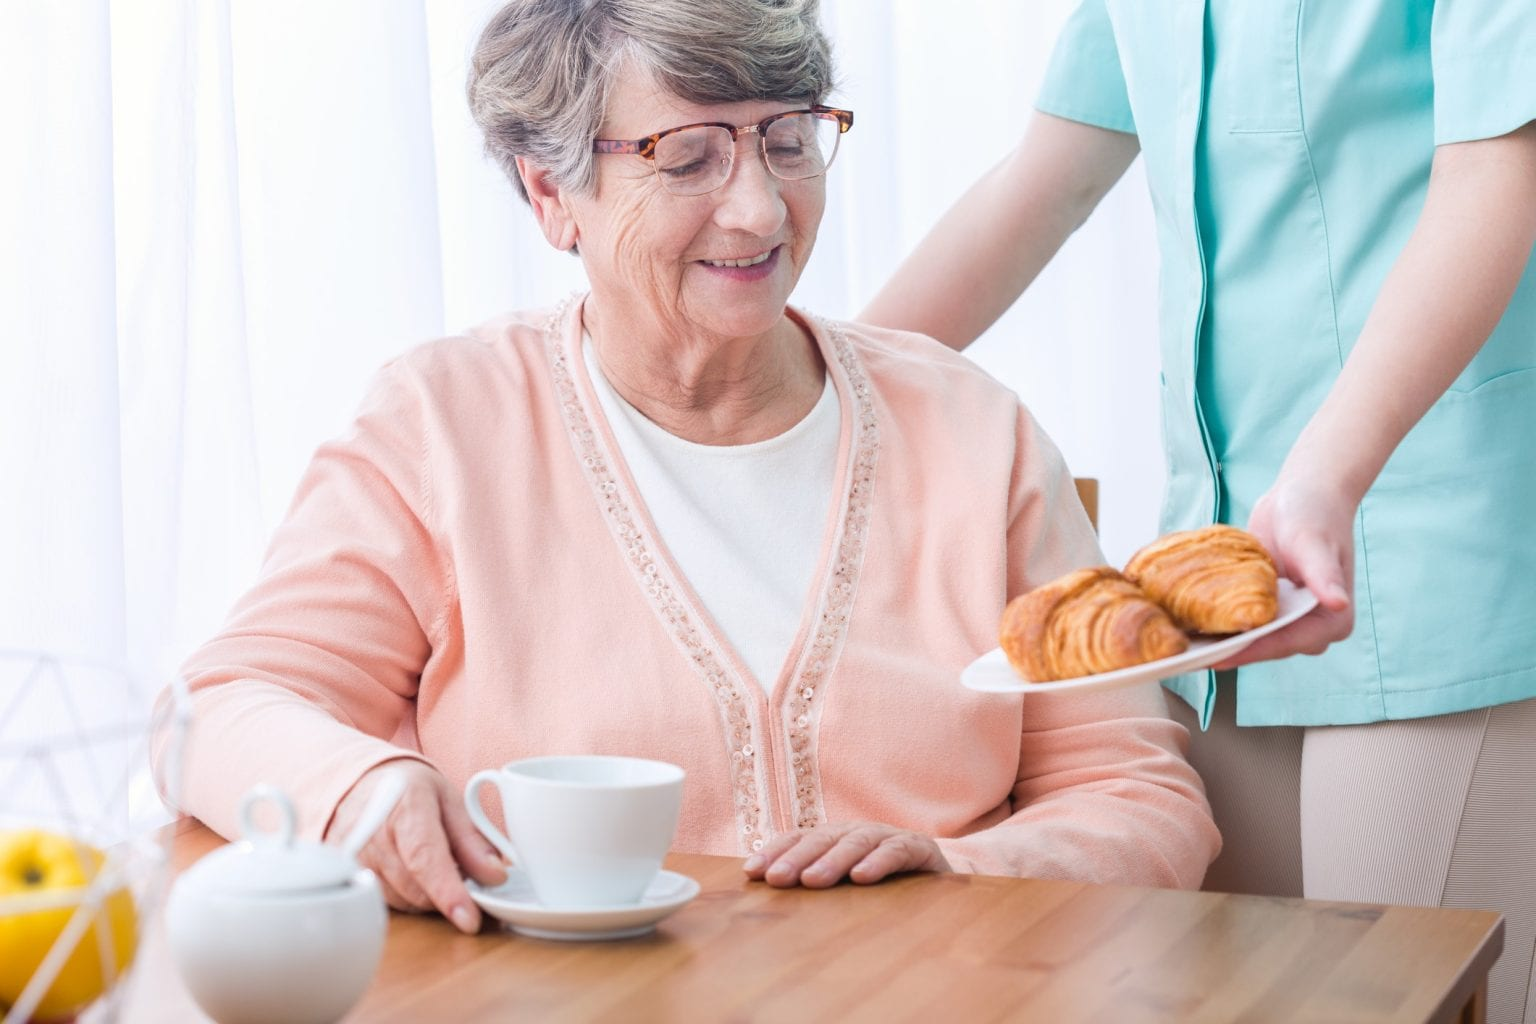 How to Prepare for Your Home Care Job